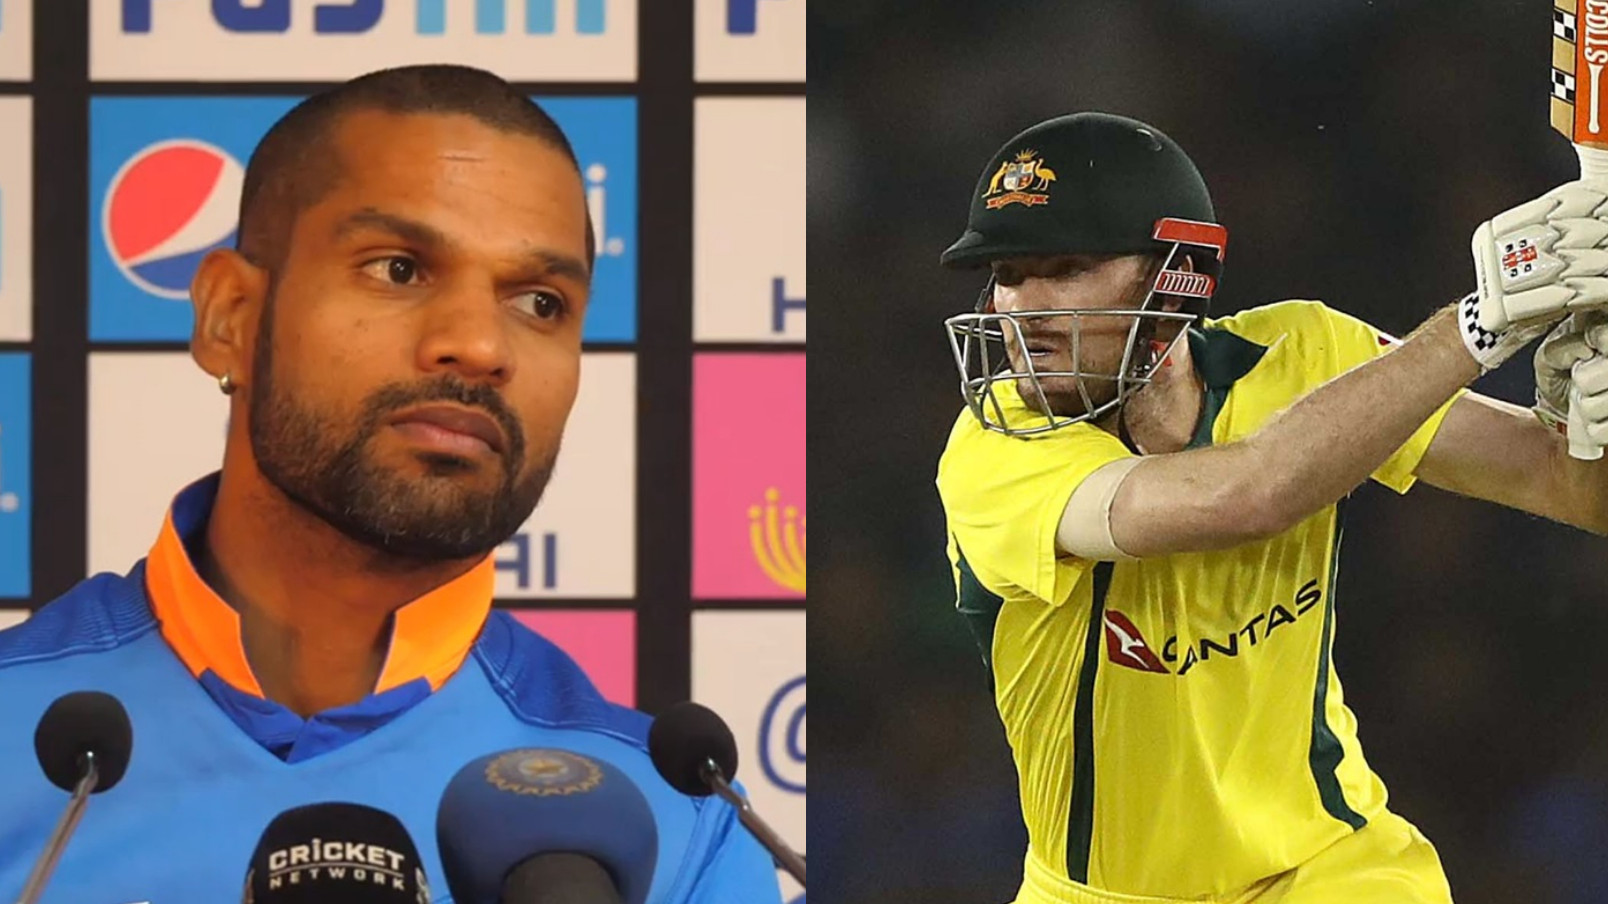 IND v AUS 2019: Cricket Australia has fun at the expense of Shikhar Dhawan after he forgets Ashton Turner's name